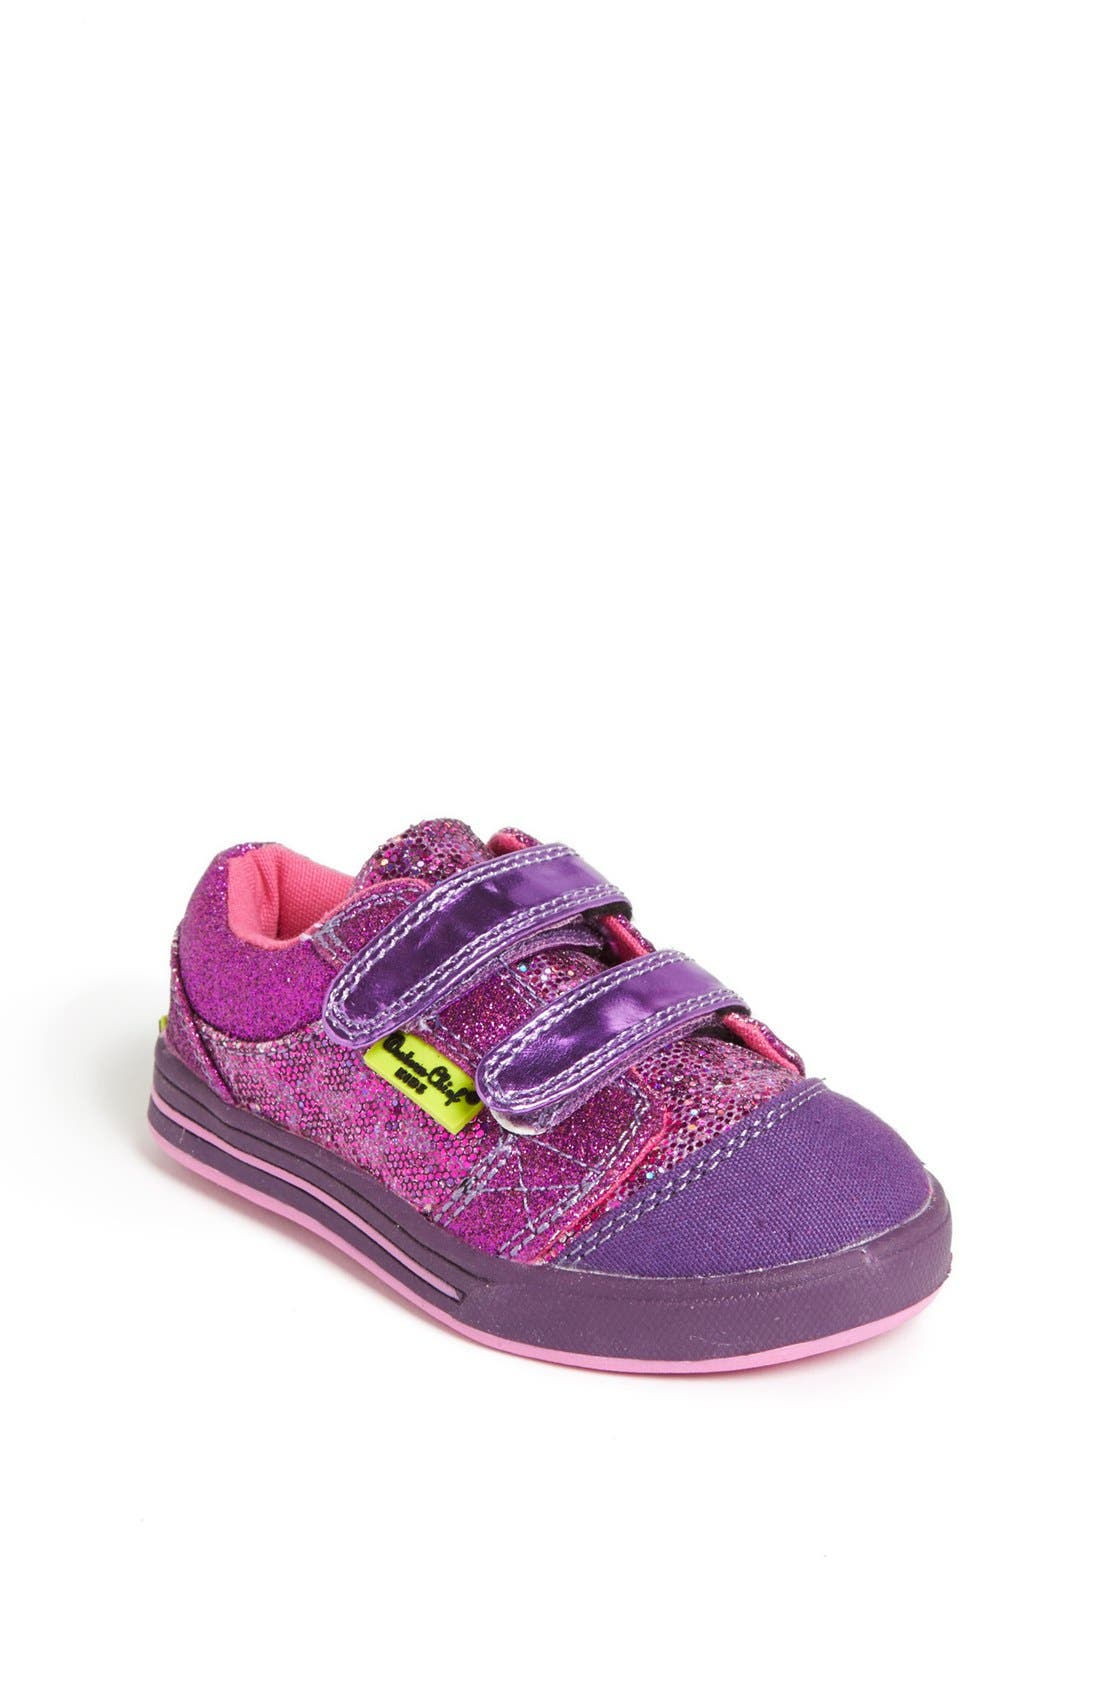 Alternate Image 1 Selected - Western Chief 'Glam Kitty' Sneaker (Walker & Toddler)